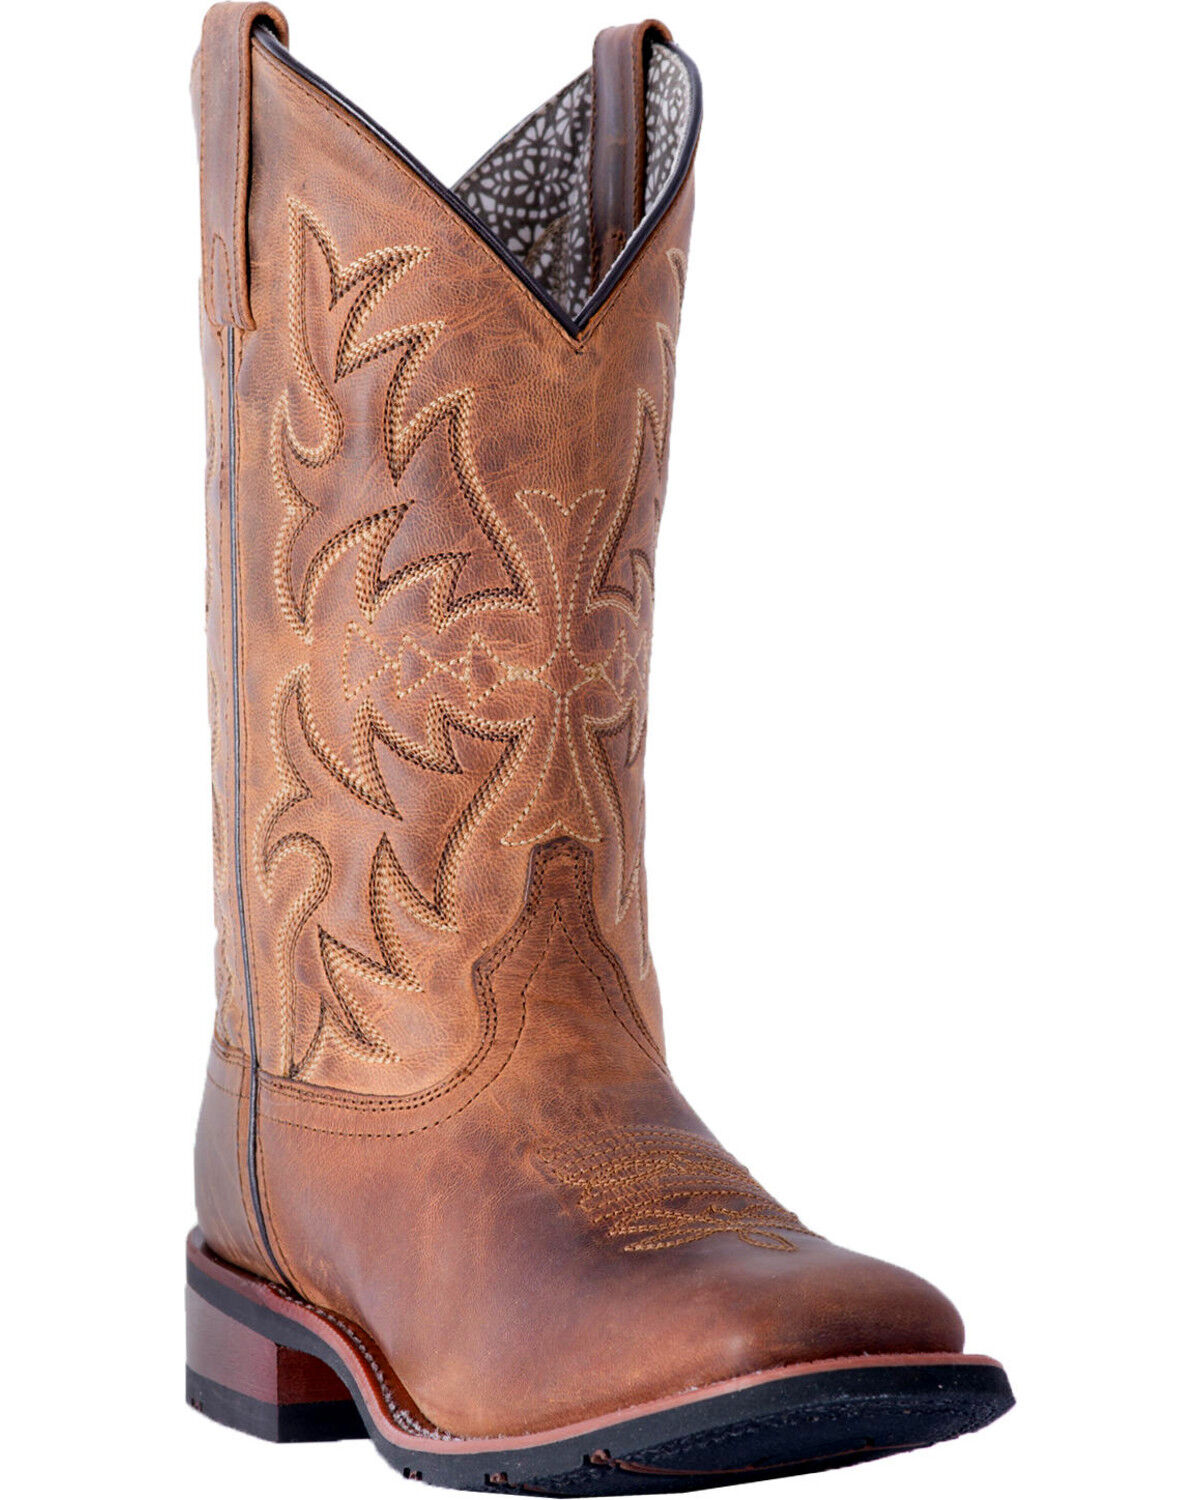 Laredo Womens Anita Brown//Blue Cowgirl Boot Square Toe